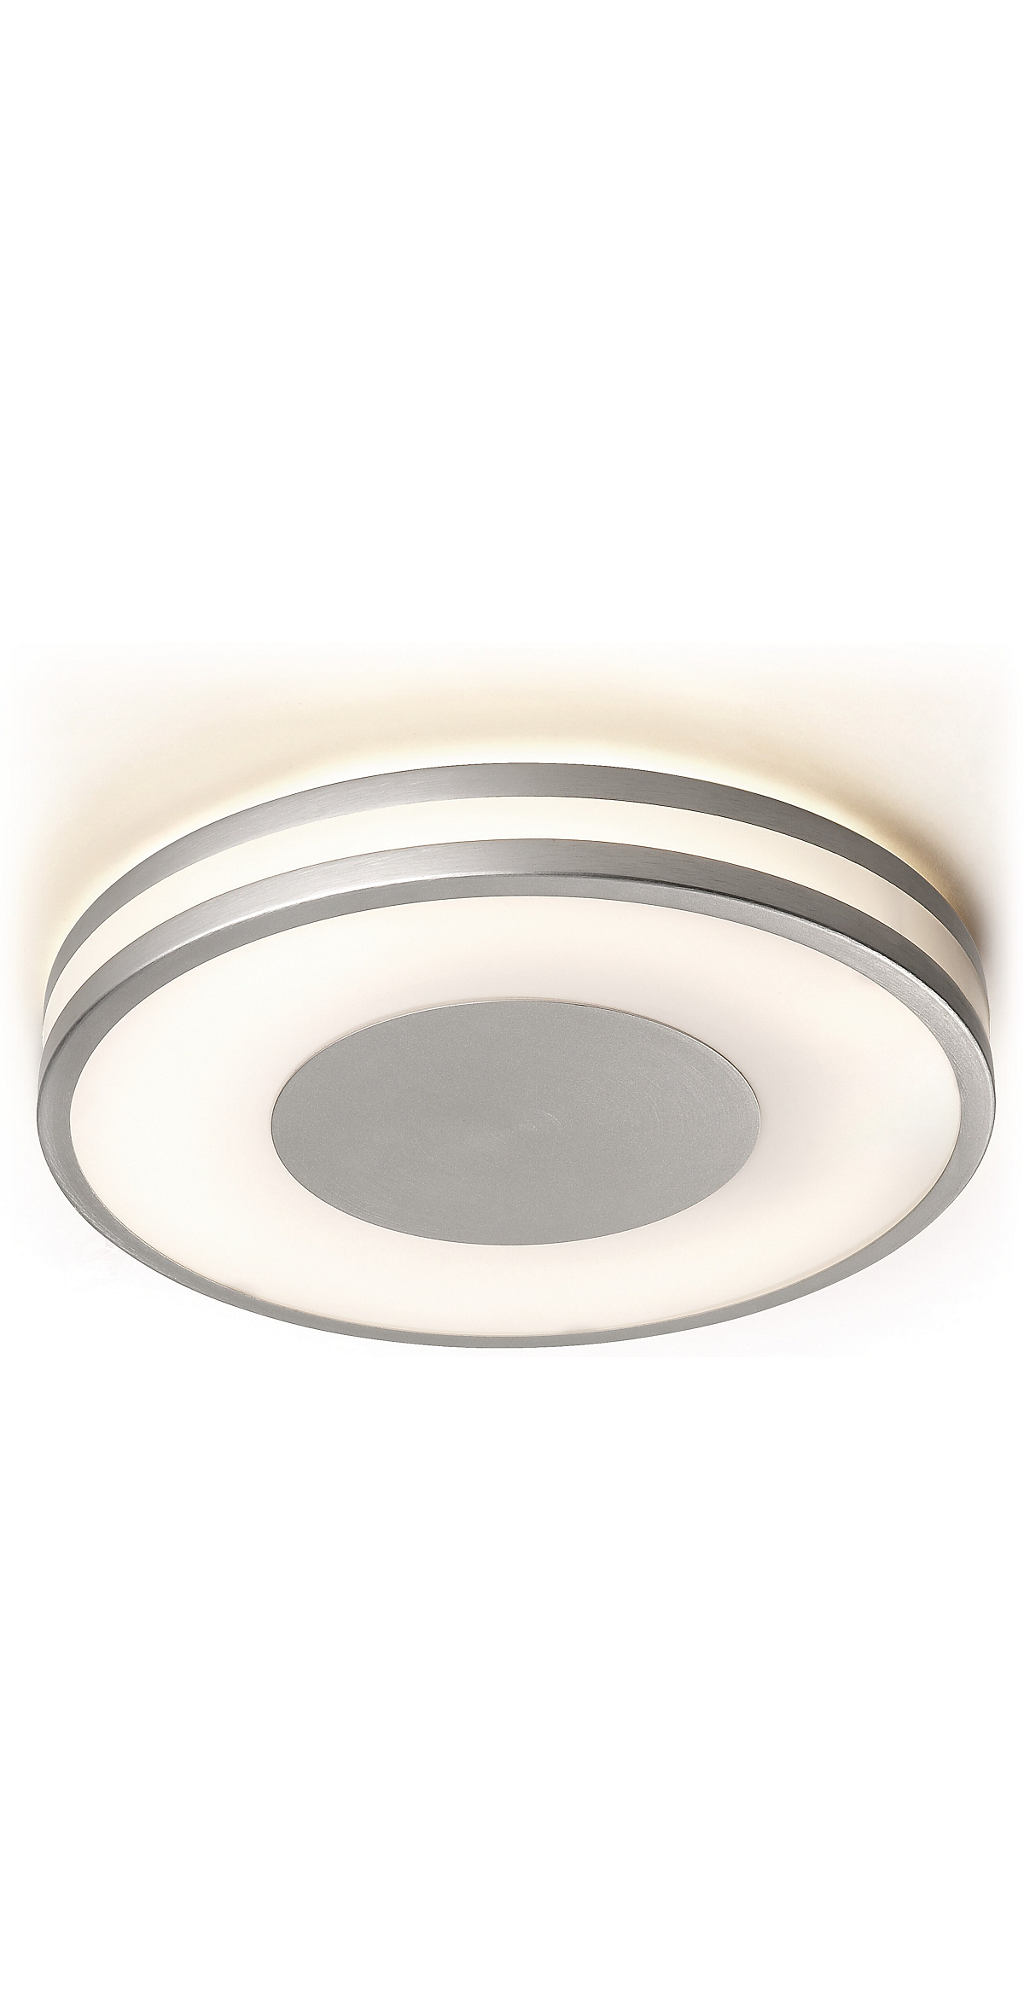 31133 48 Myliving Aluminium 28w Led Ceiling Discontinued